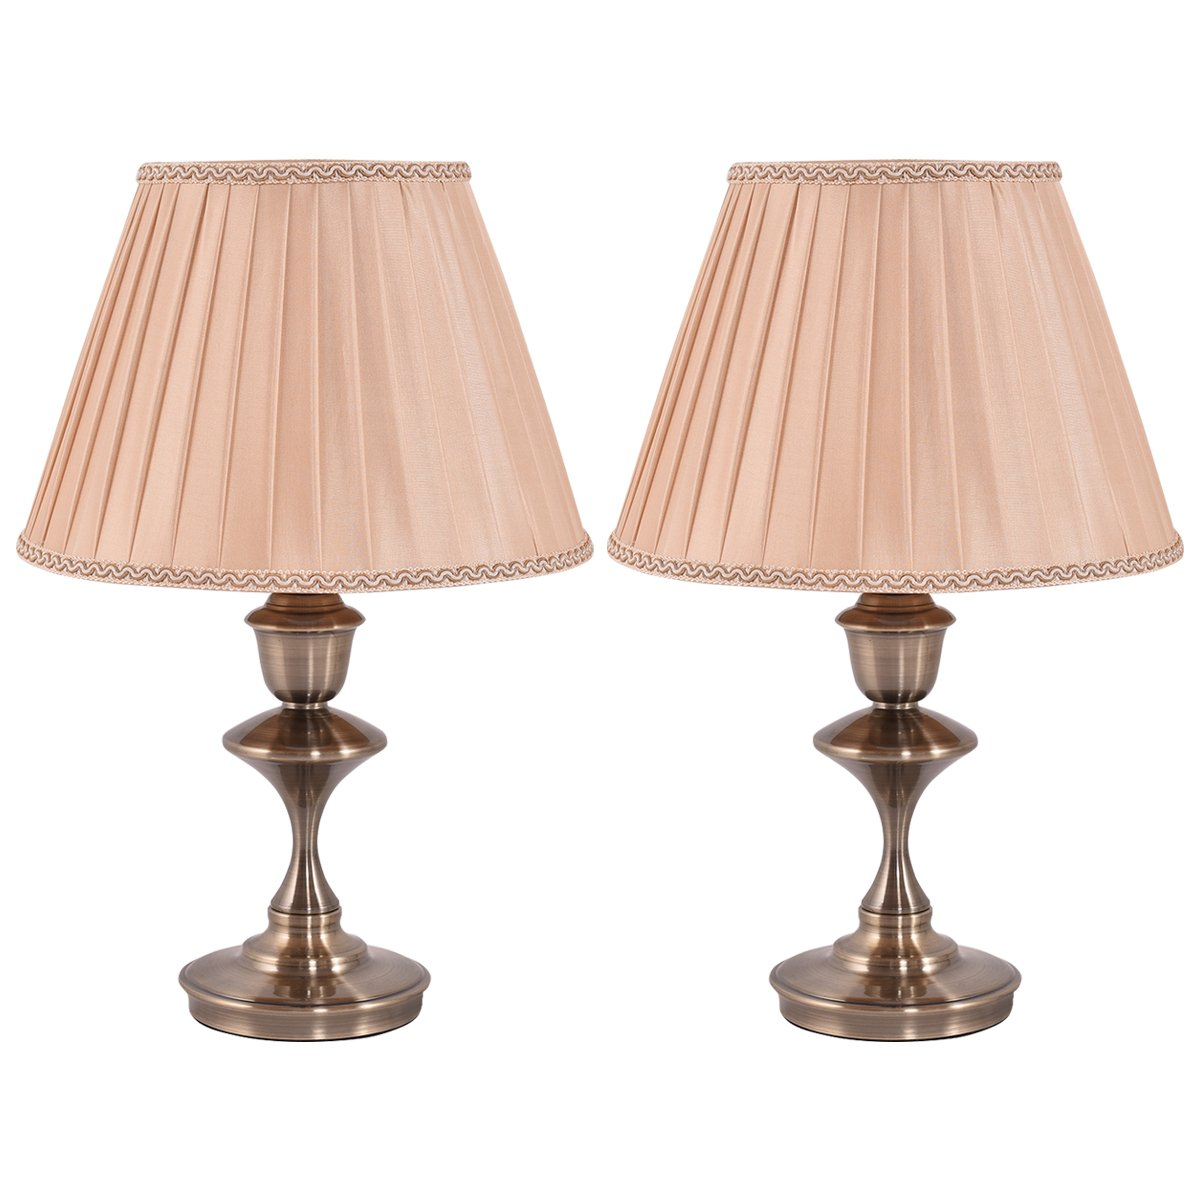 Costzon Bedside Table Lamp, Elegant Steel Base, Antique Style with Warm Fabric Shade Bulb for Bedroom Living Room Coffee Desk Lamp, Include LED Bulb, Cord (Brass, Set of 2)